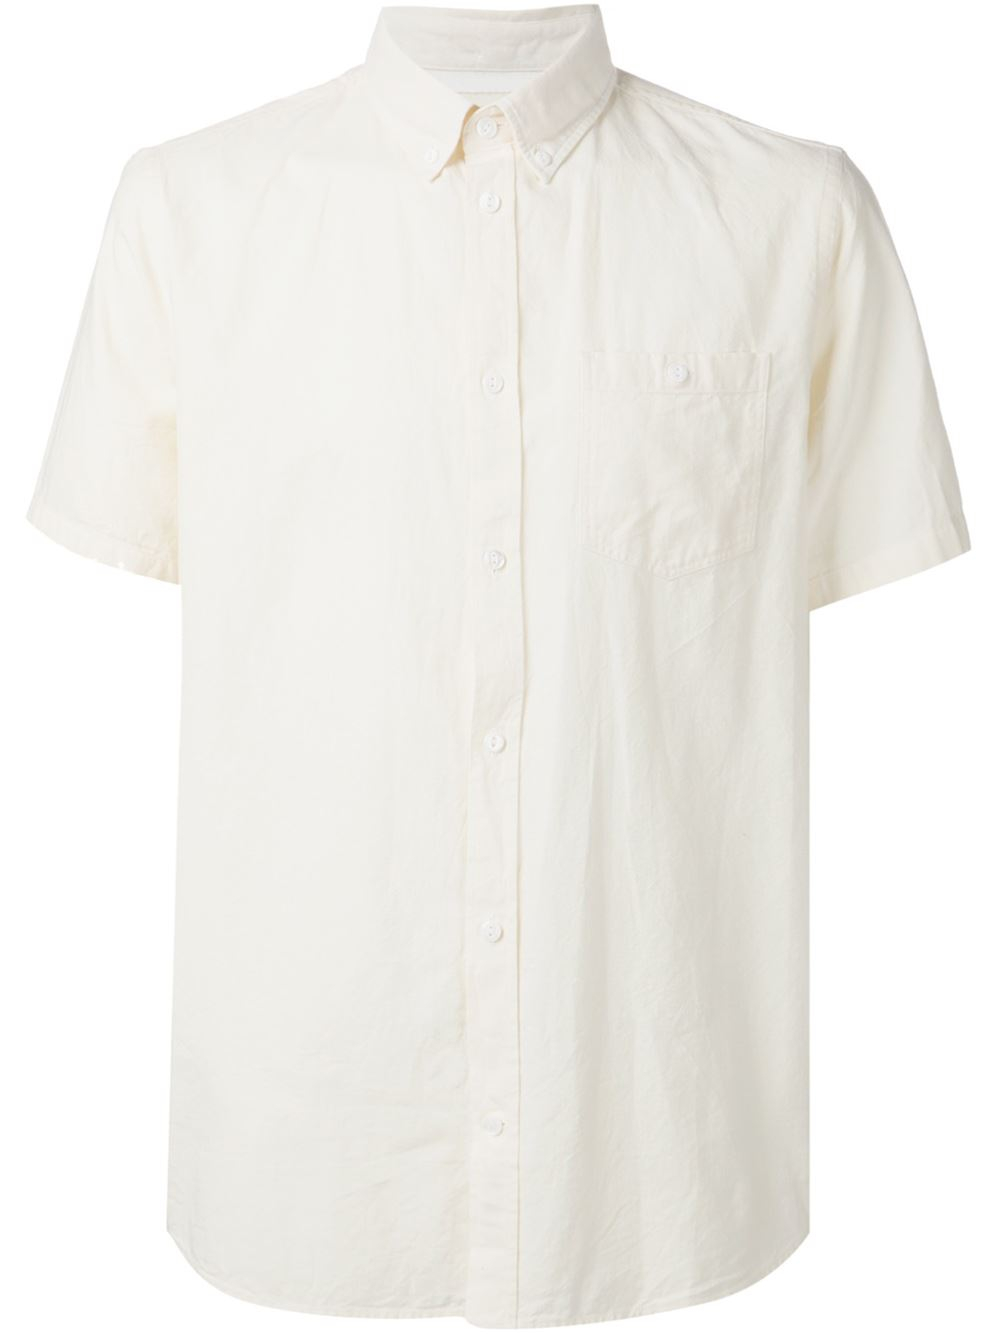 Norse projects short sleeve button down shirt in white for for White short sleeve button down shirts for men